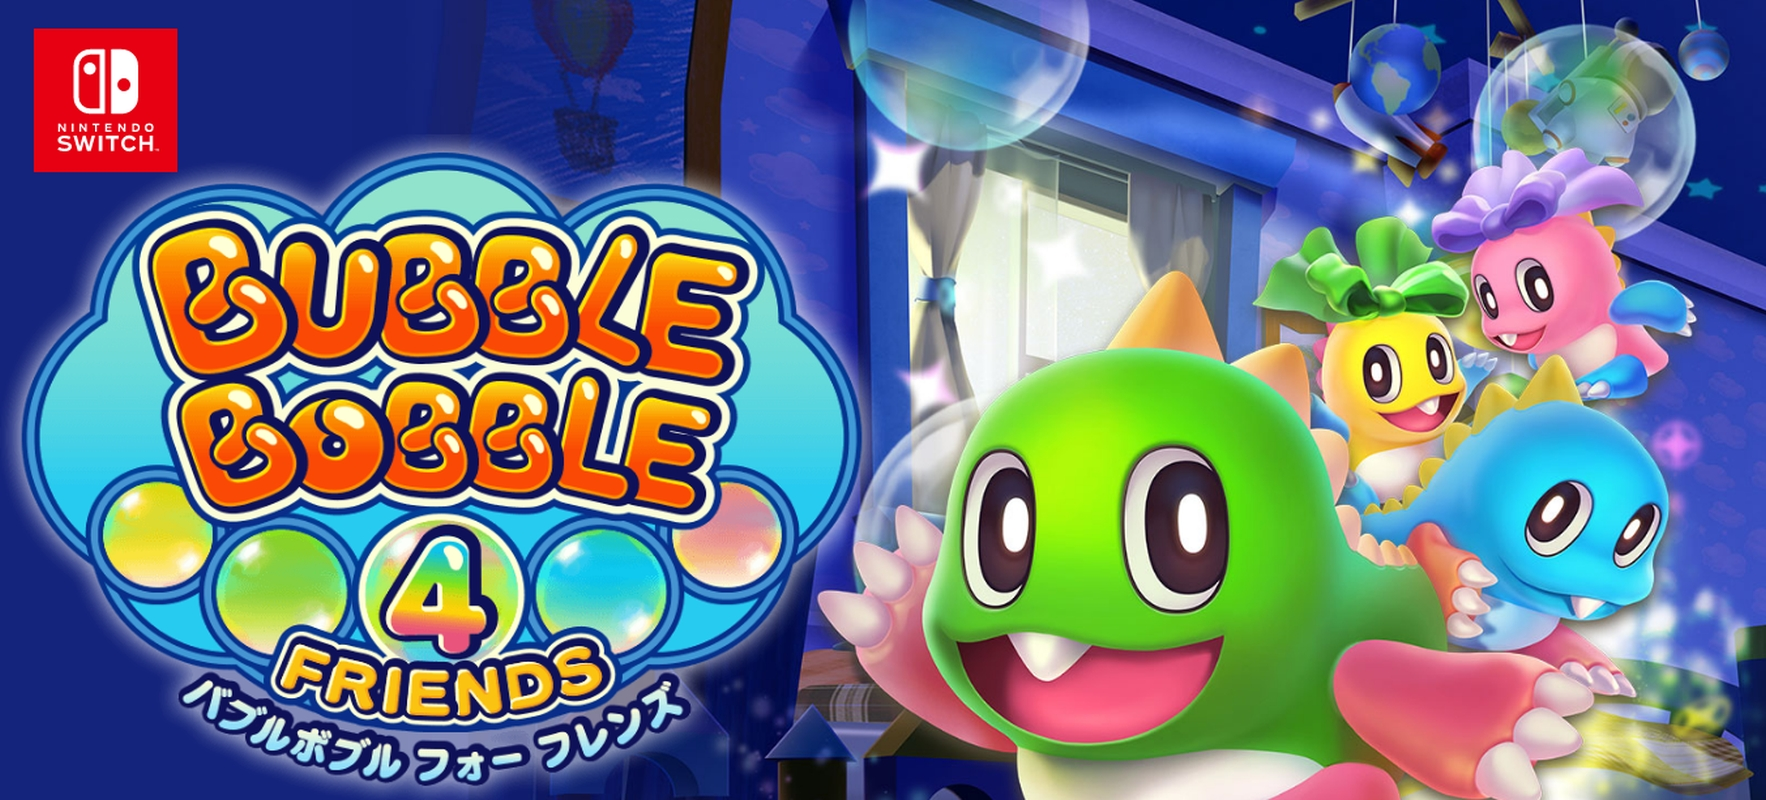 Classic Series Bubble Bobble Makes Its Return On The Nintendo Switch